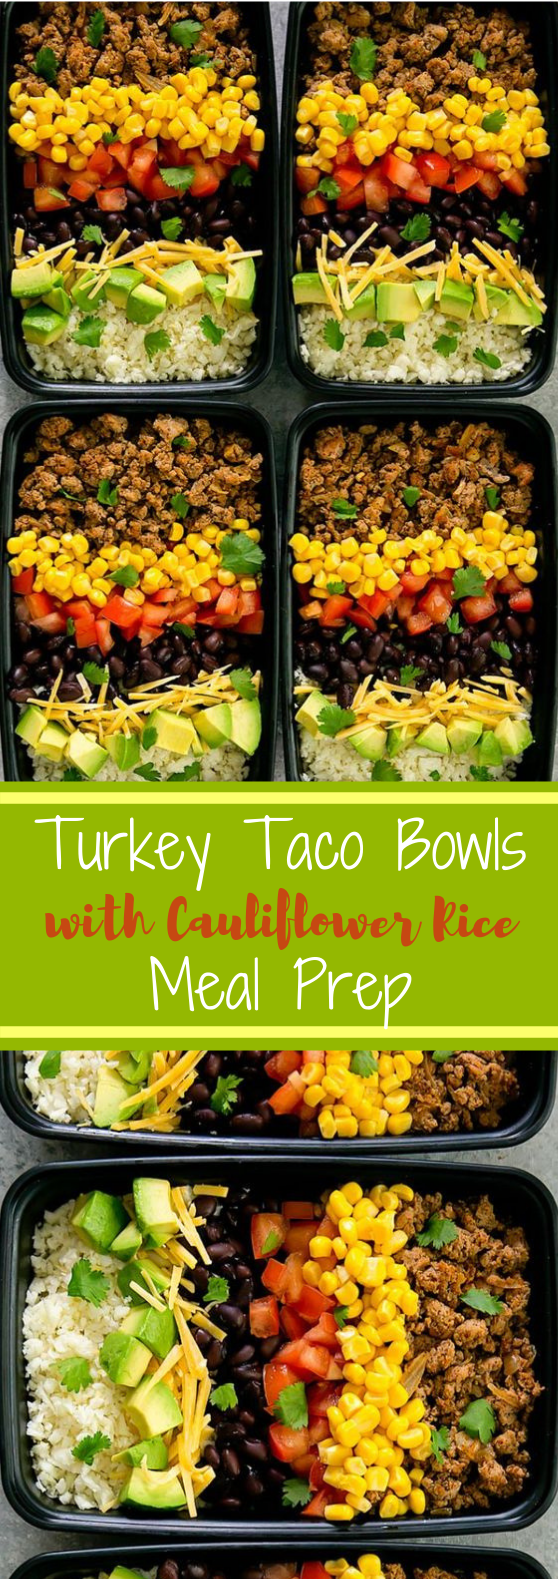 Turkey Taco Bowls with Cauliflower Rice Meal Prep #lunch #healthy